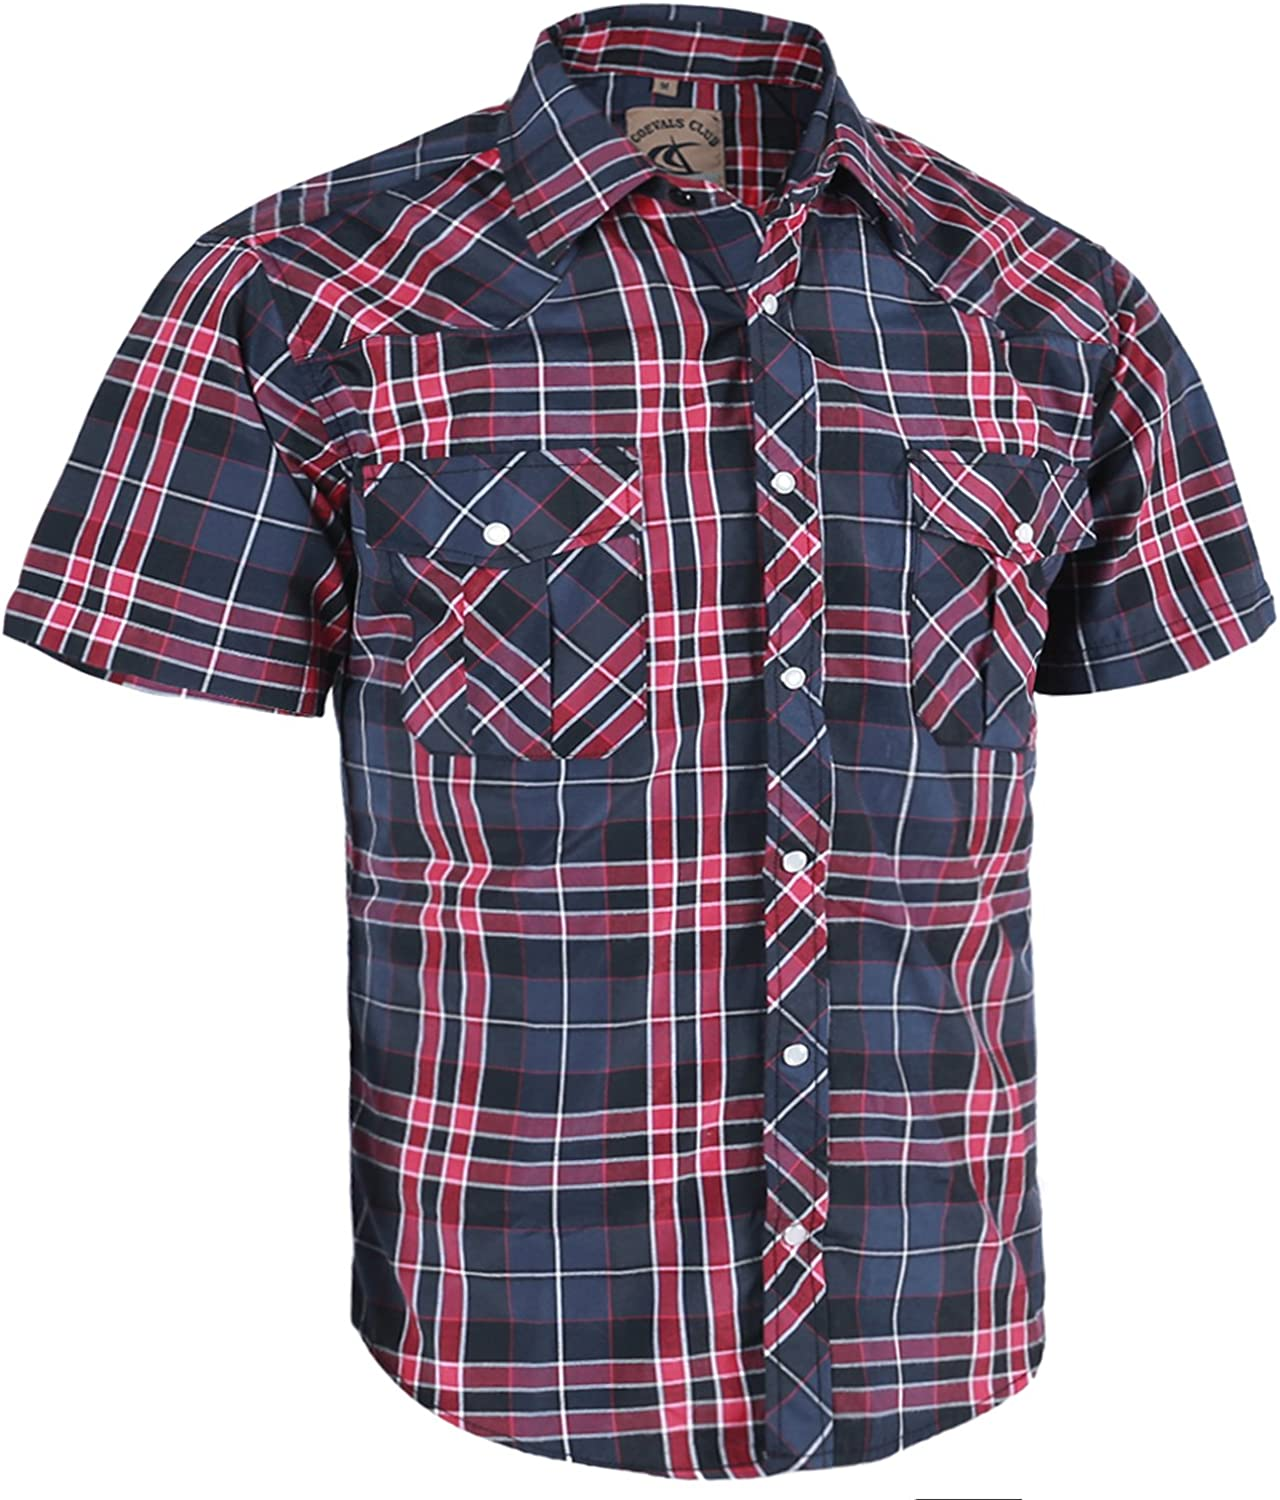 Coevals Club Men's Casual Plaid Pearl Button Snap Front Short Sleeve Shirt Regular Fit (Black/red #12, S)